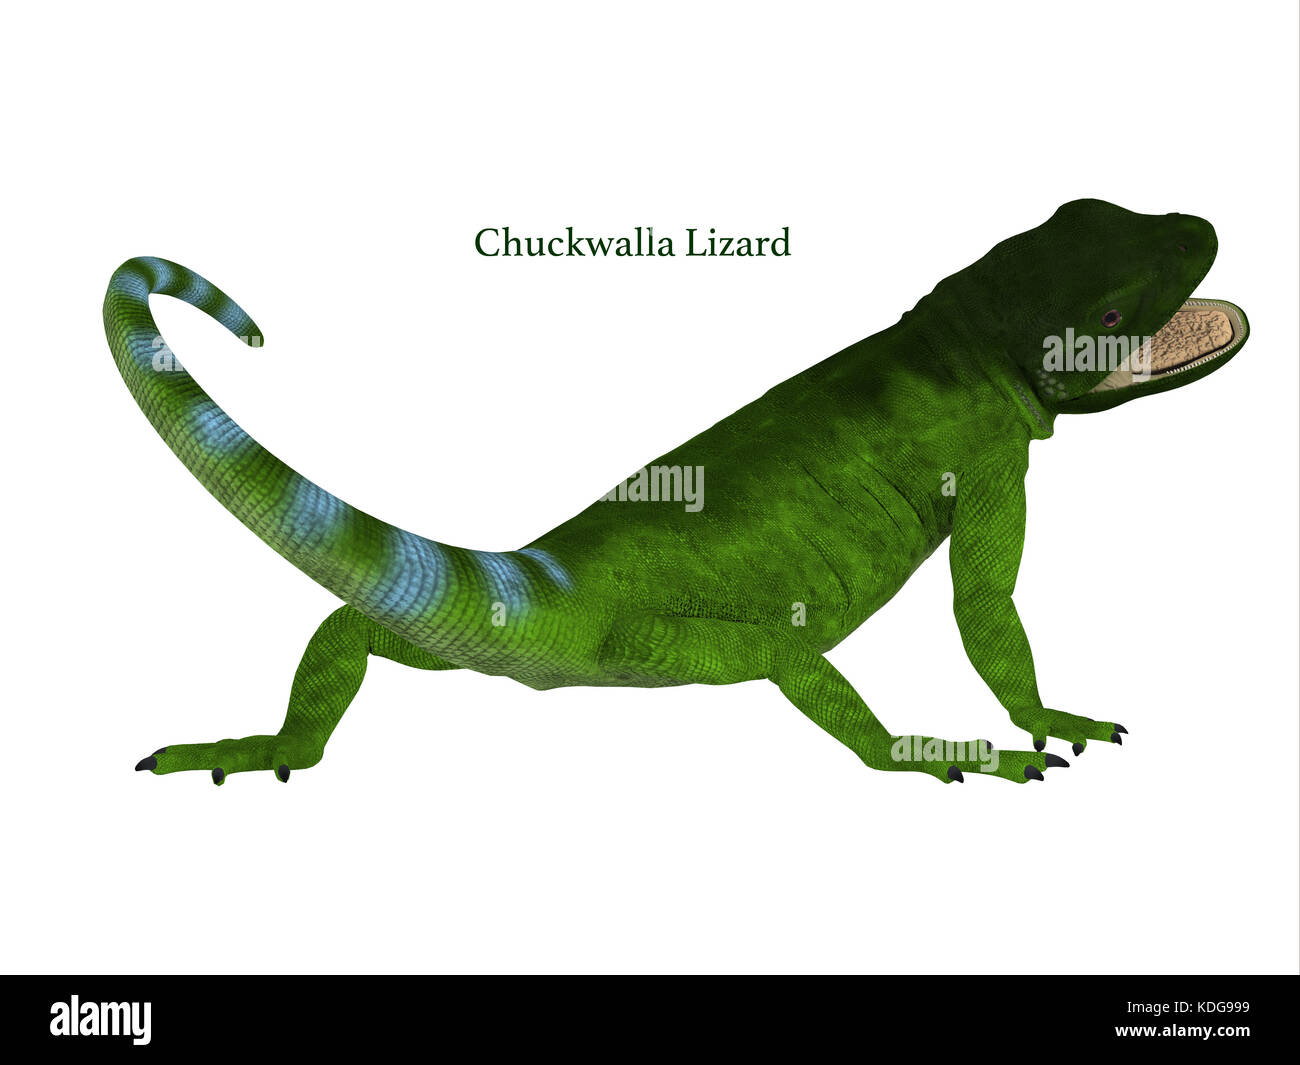 The Chuckwalla is a large lizard found primarily in arid regions of the southern United States and northern Mexico. Stock Photo